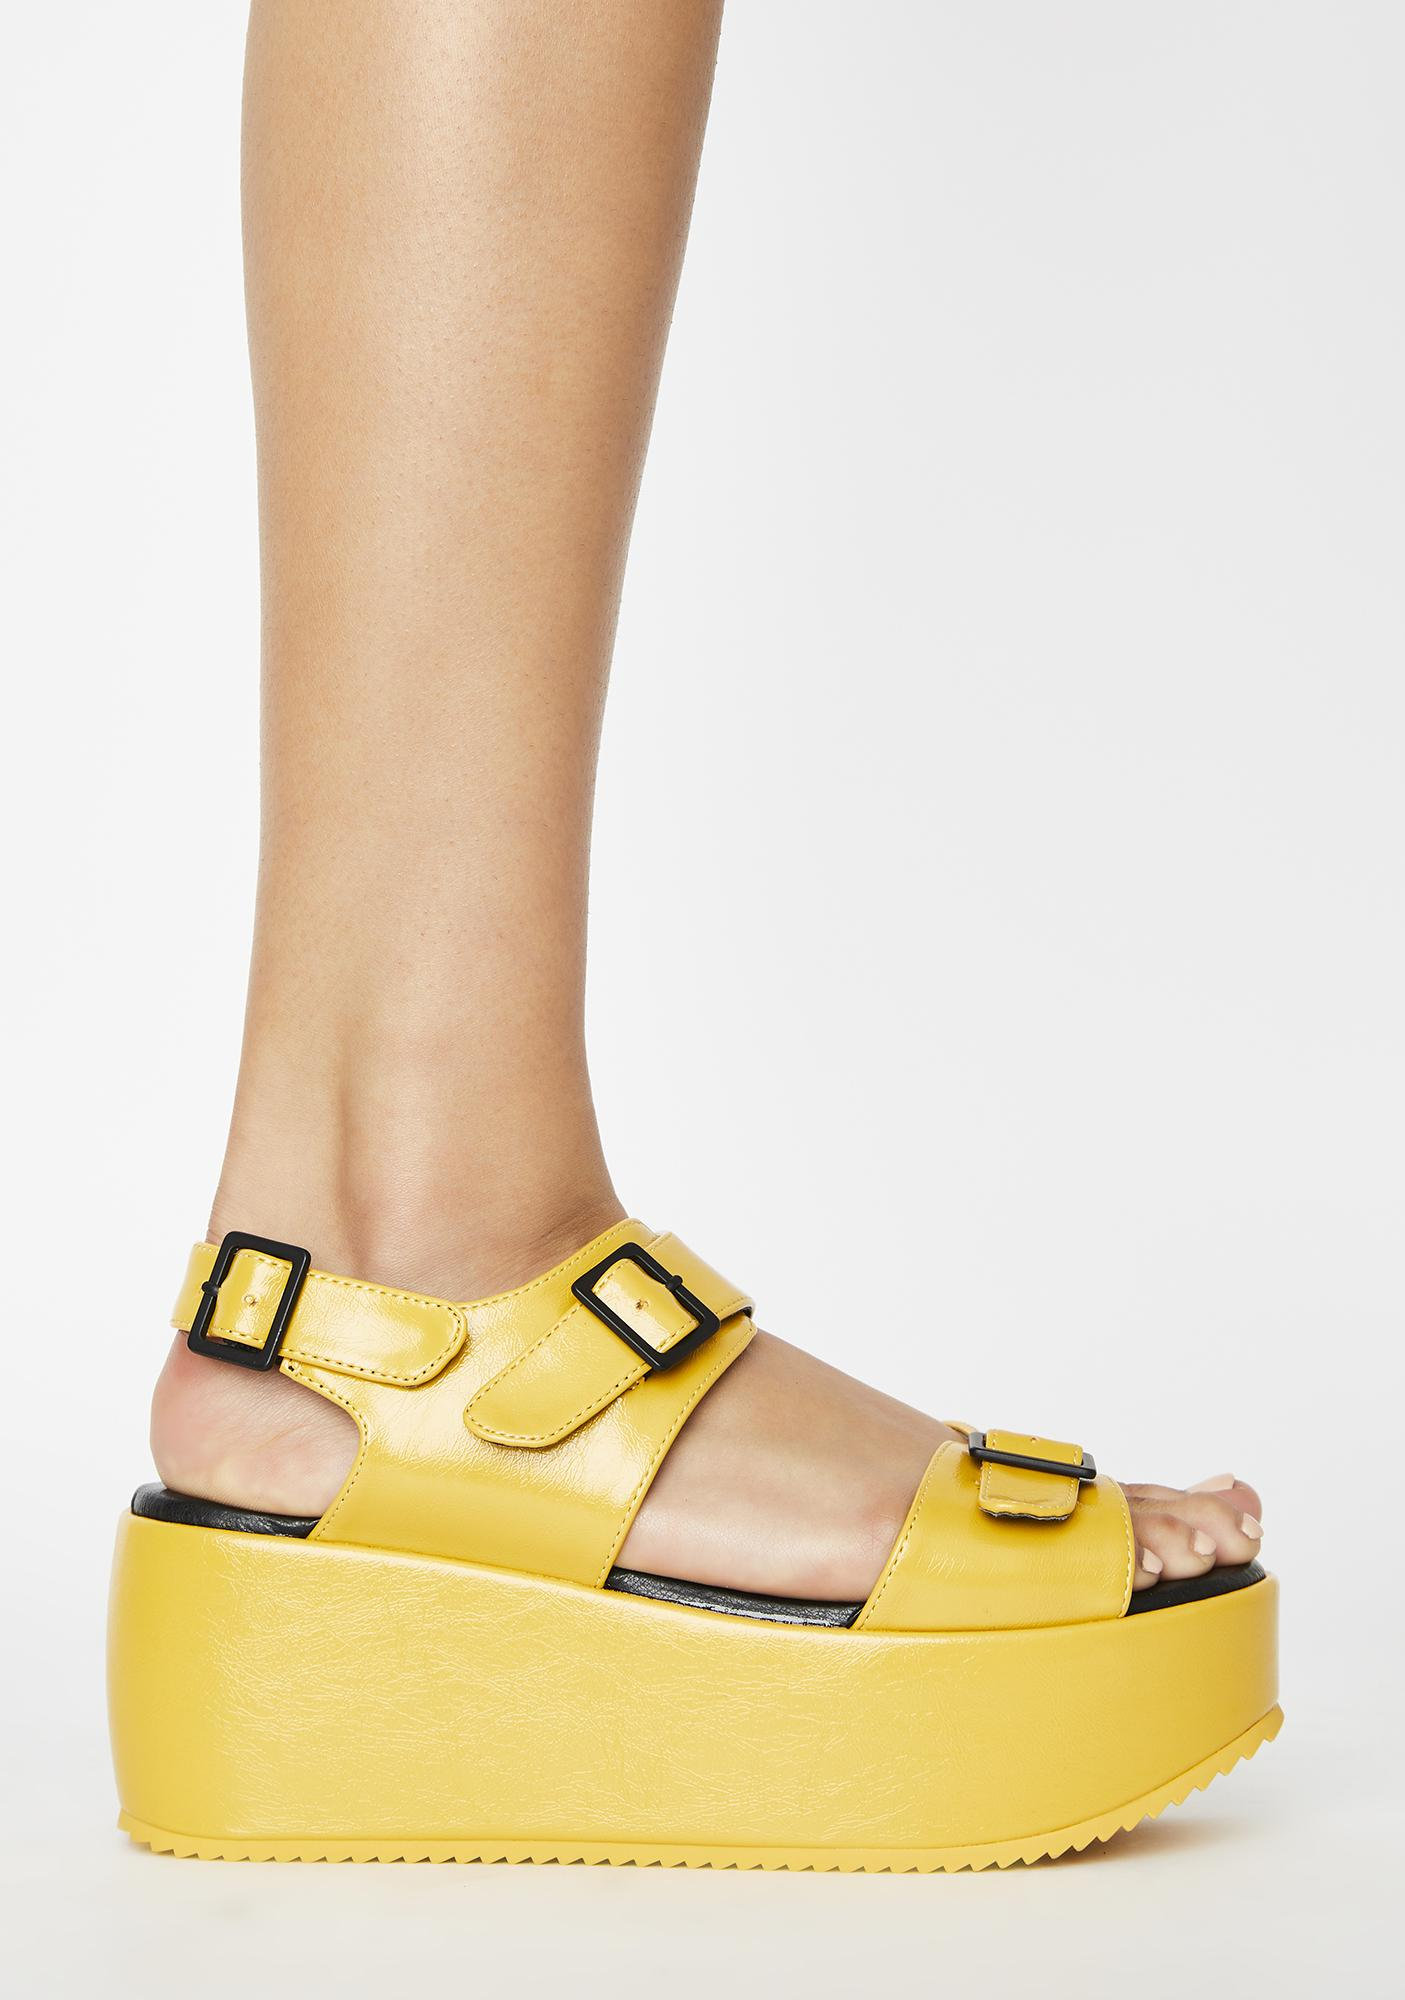 Rebels Soliel Lori Platform Sandals